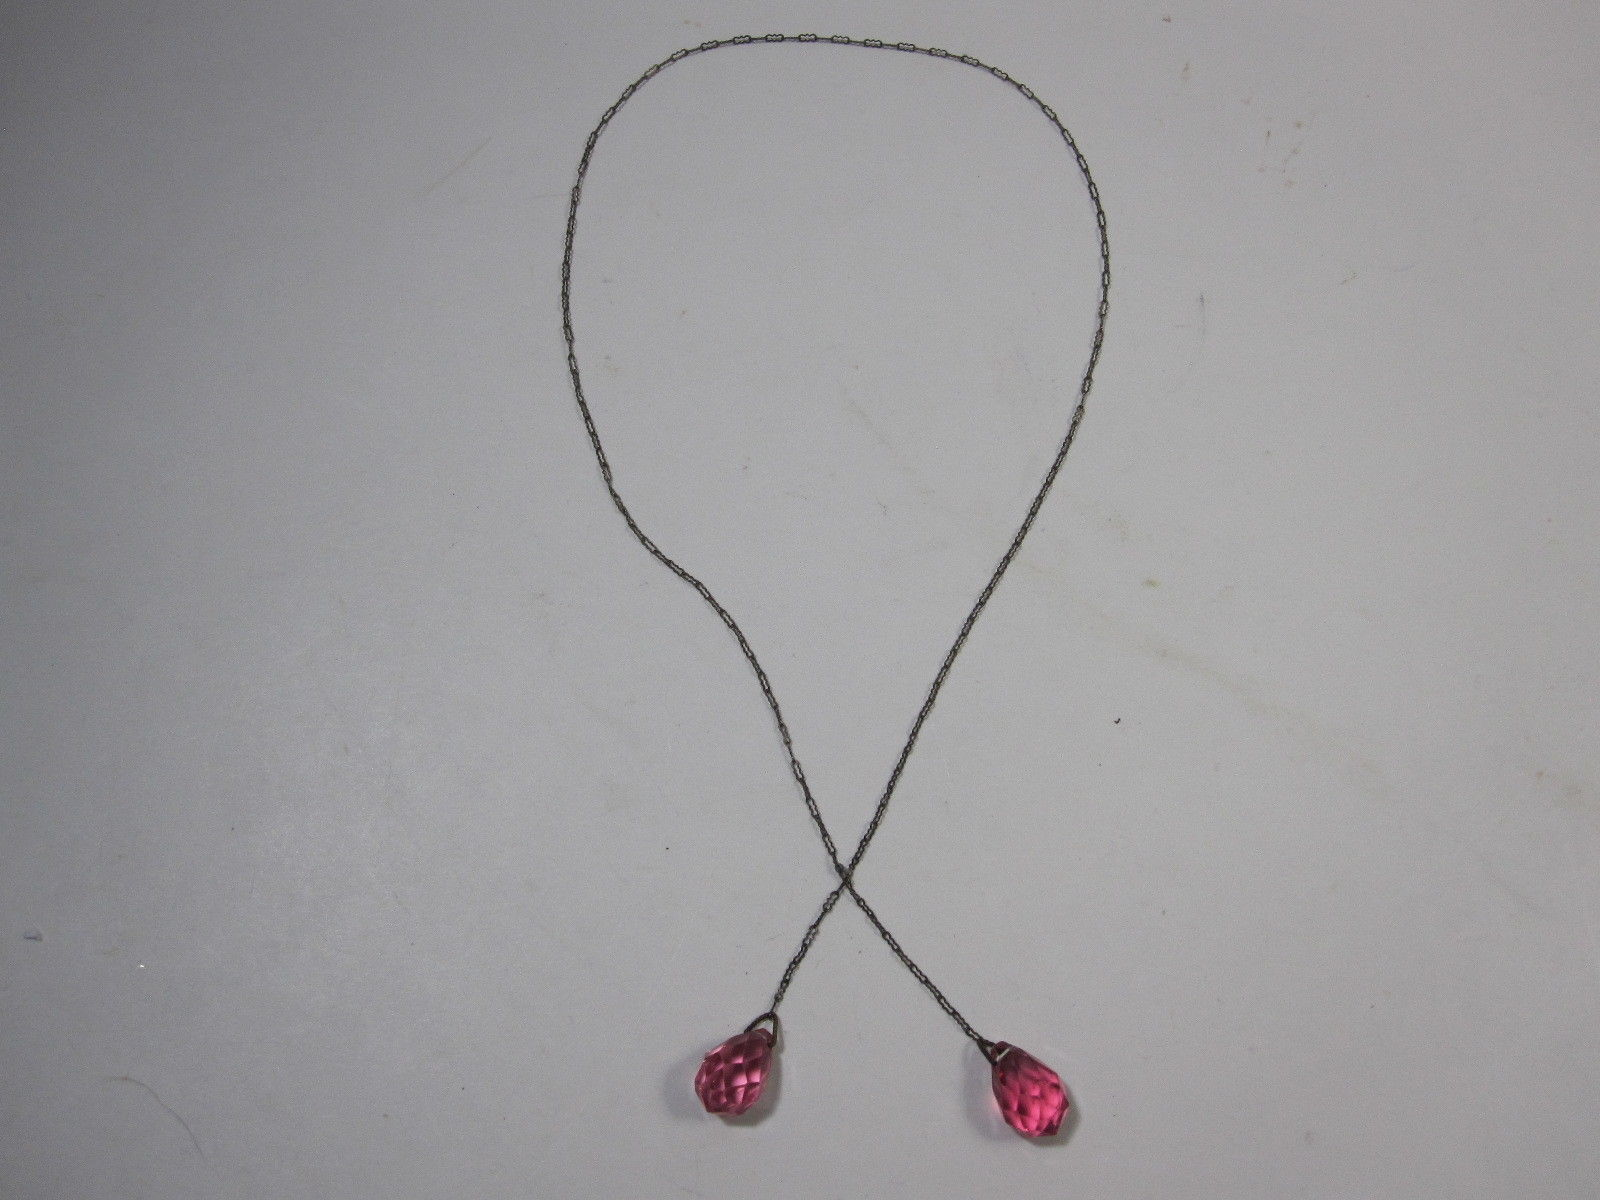 """Vintage 1940's Faceted Bead Lariat Necklace 18"""" Decorative Chain Pink Beads"""